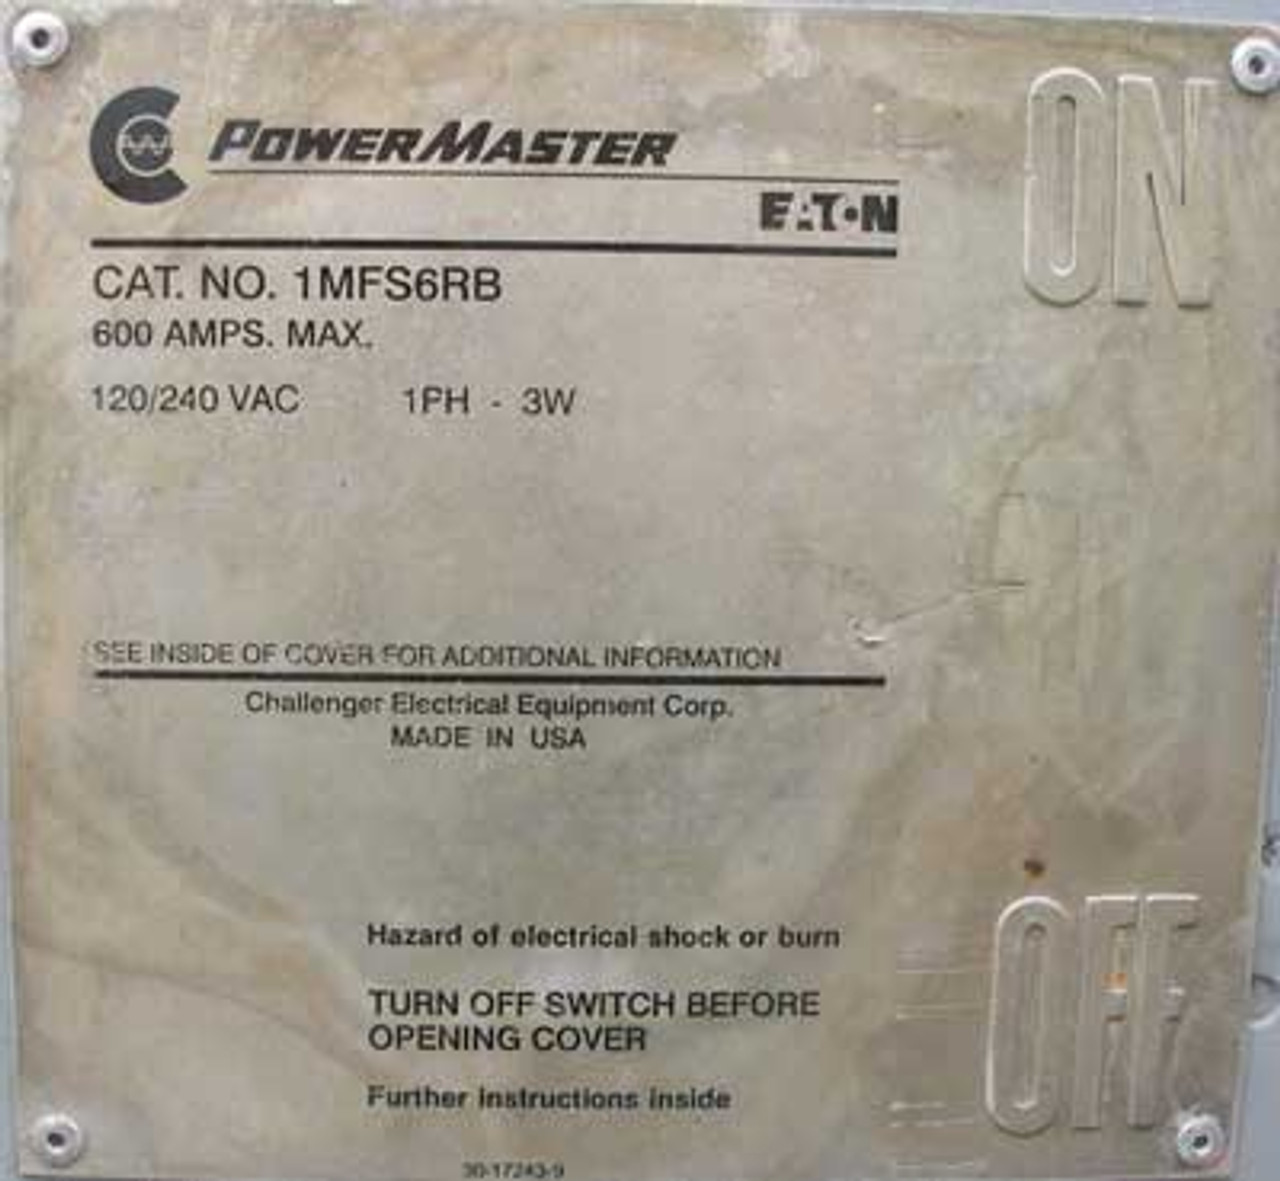 Eaton PowerMaster 1MFS6RB Disconnect Switch 1PH 3W 600A 120/240VAC - Used